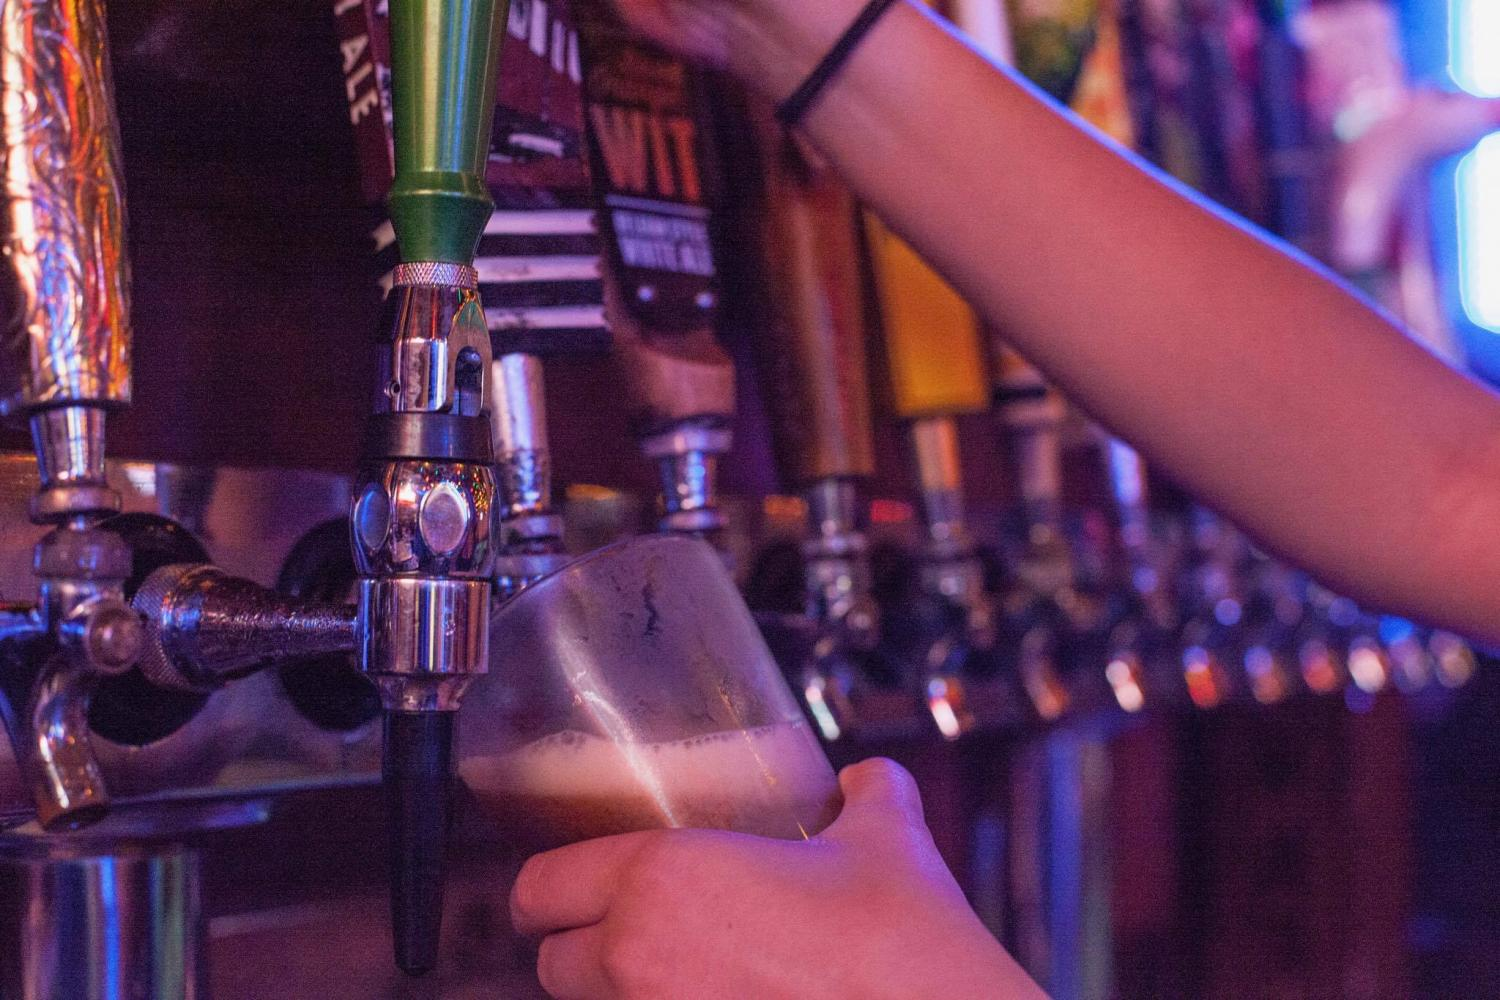 Marketing senior Lexi Price pours beer at Bubs in Pacific Beach.